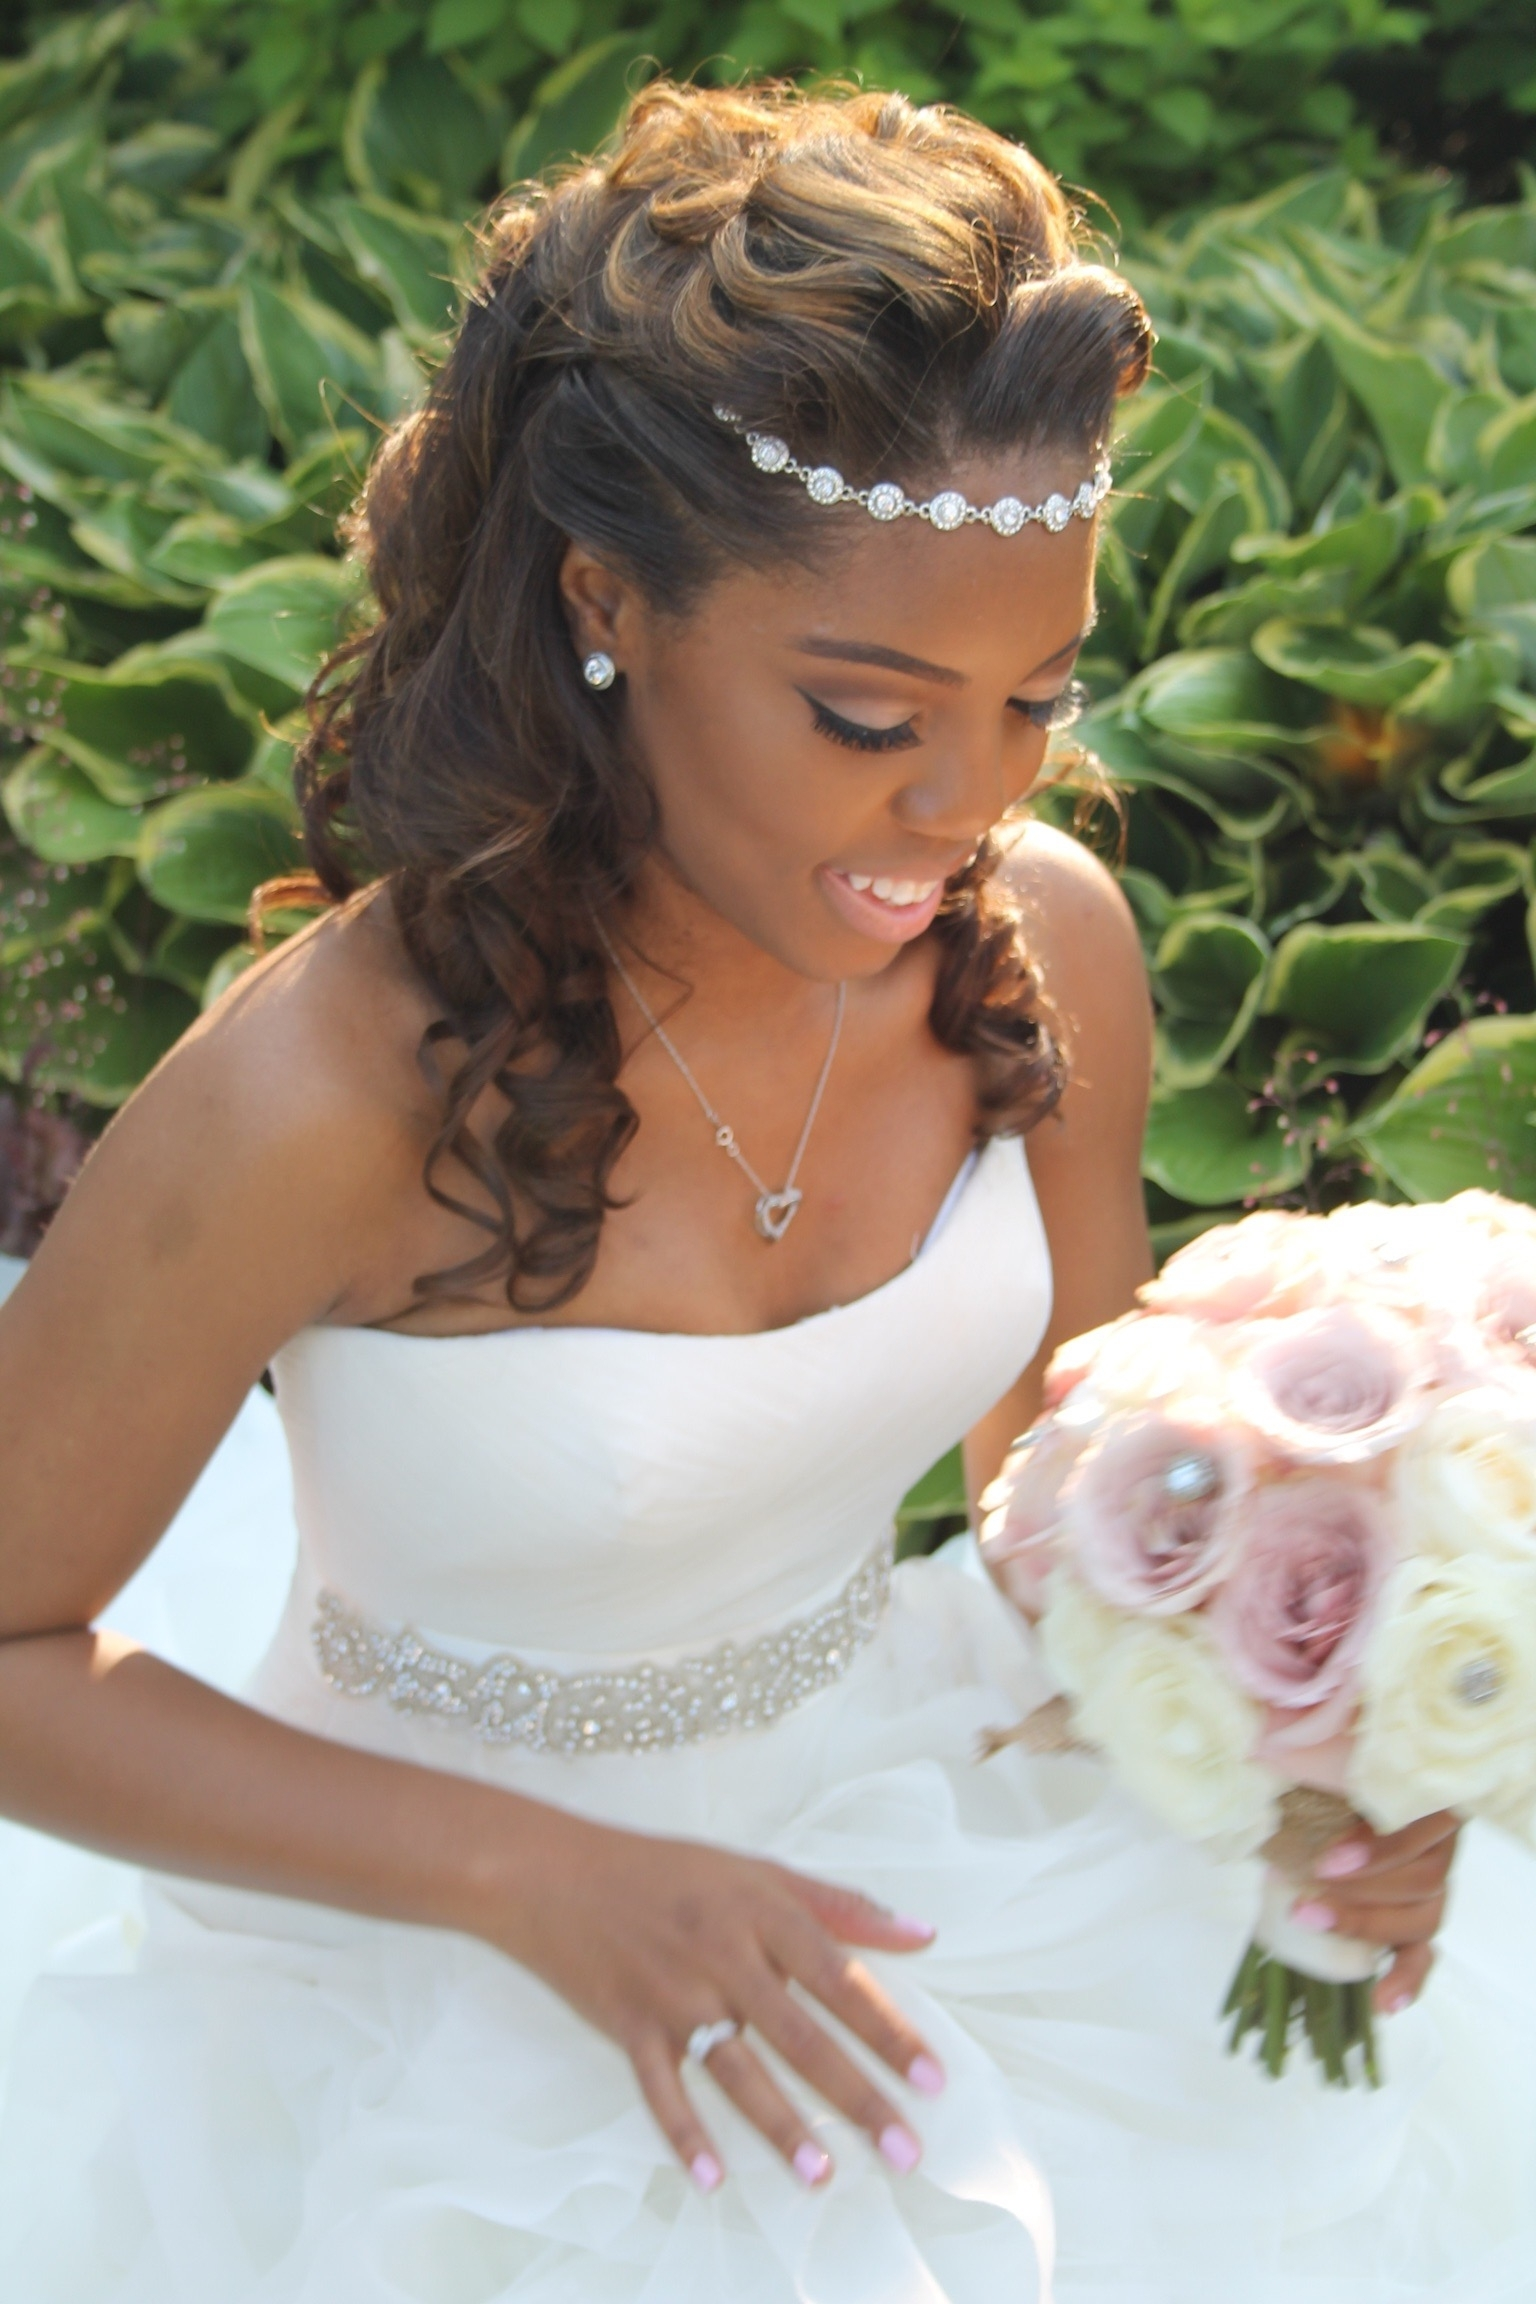 Remarkable Hairstyles For Brides For 43 Black Wedding Hairstyles For With Regard To Most Current Wedding Hairstyles For Black Women (View 9 of 15)